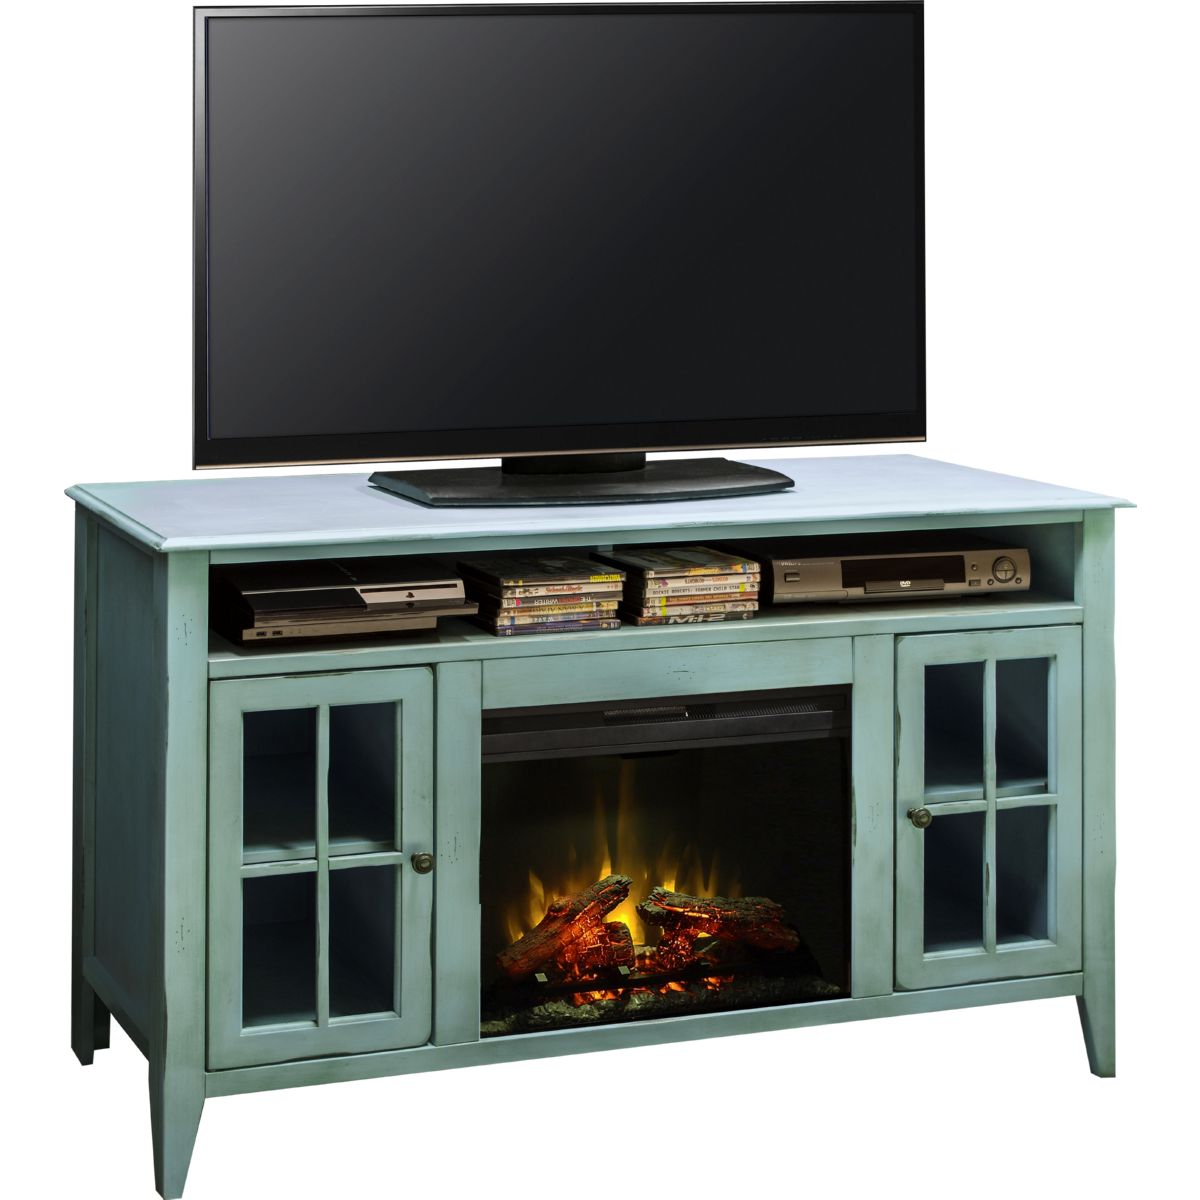 "Legends Furniture CA5312 Calistoga Blue 60"" Fireplace Console Distressed Finish Legends-CA5312"